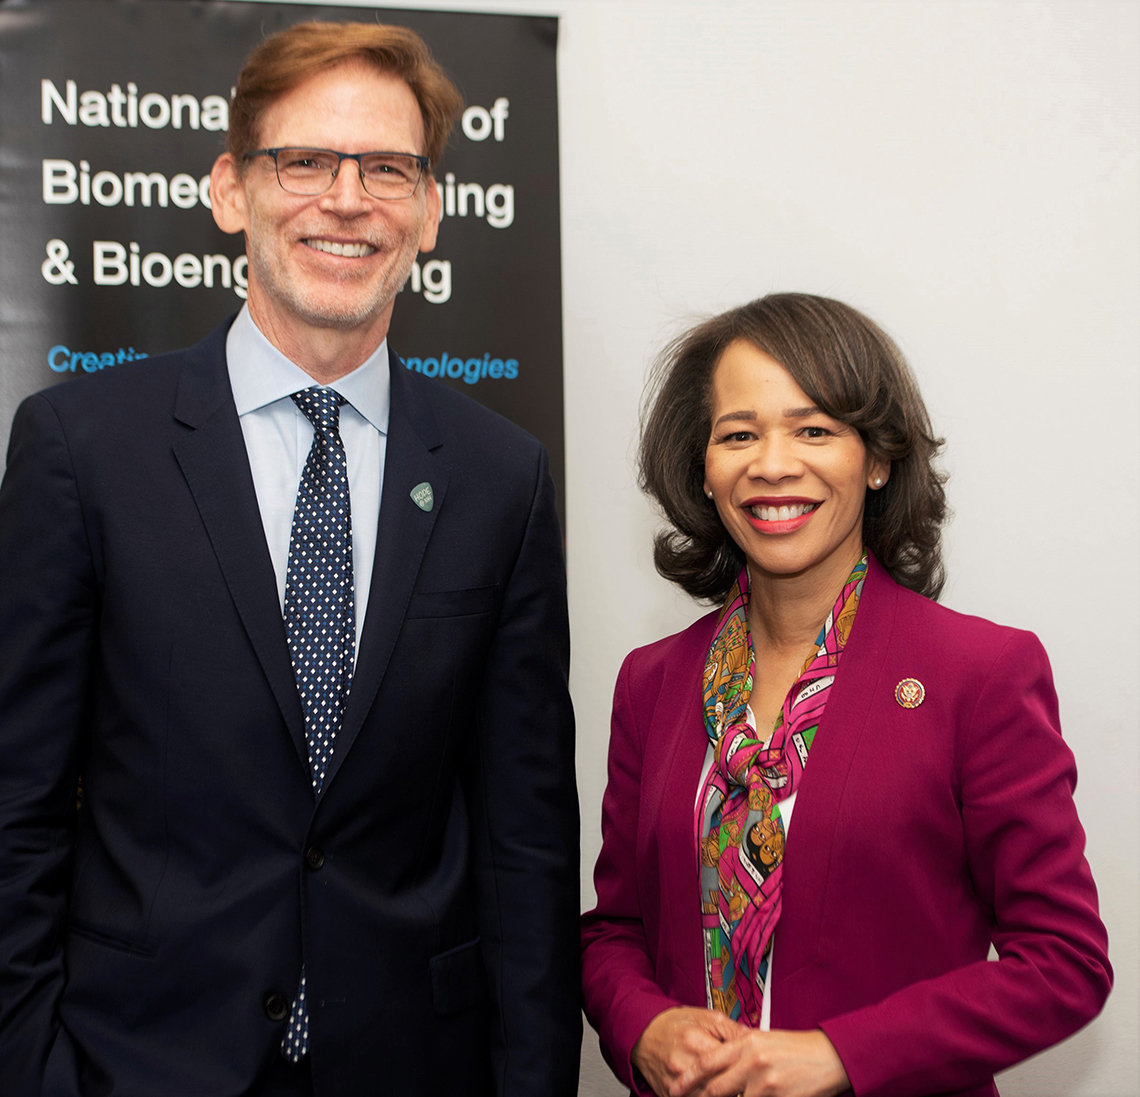 Tromberg chats with Rep. Rochester